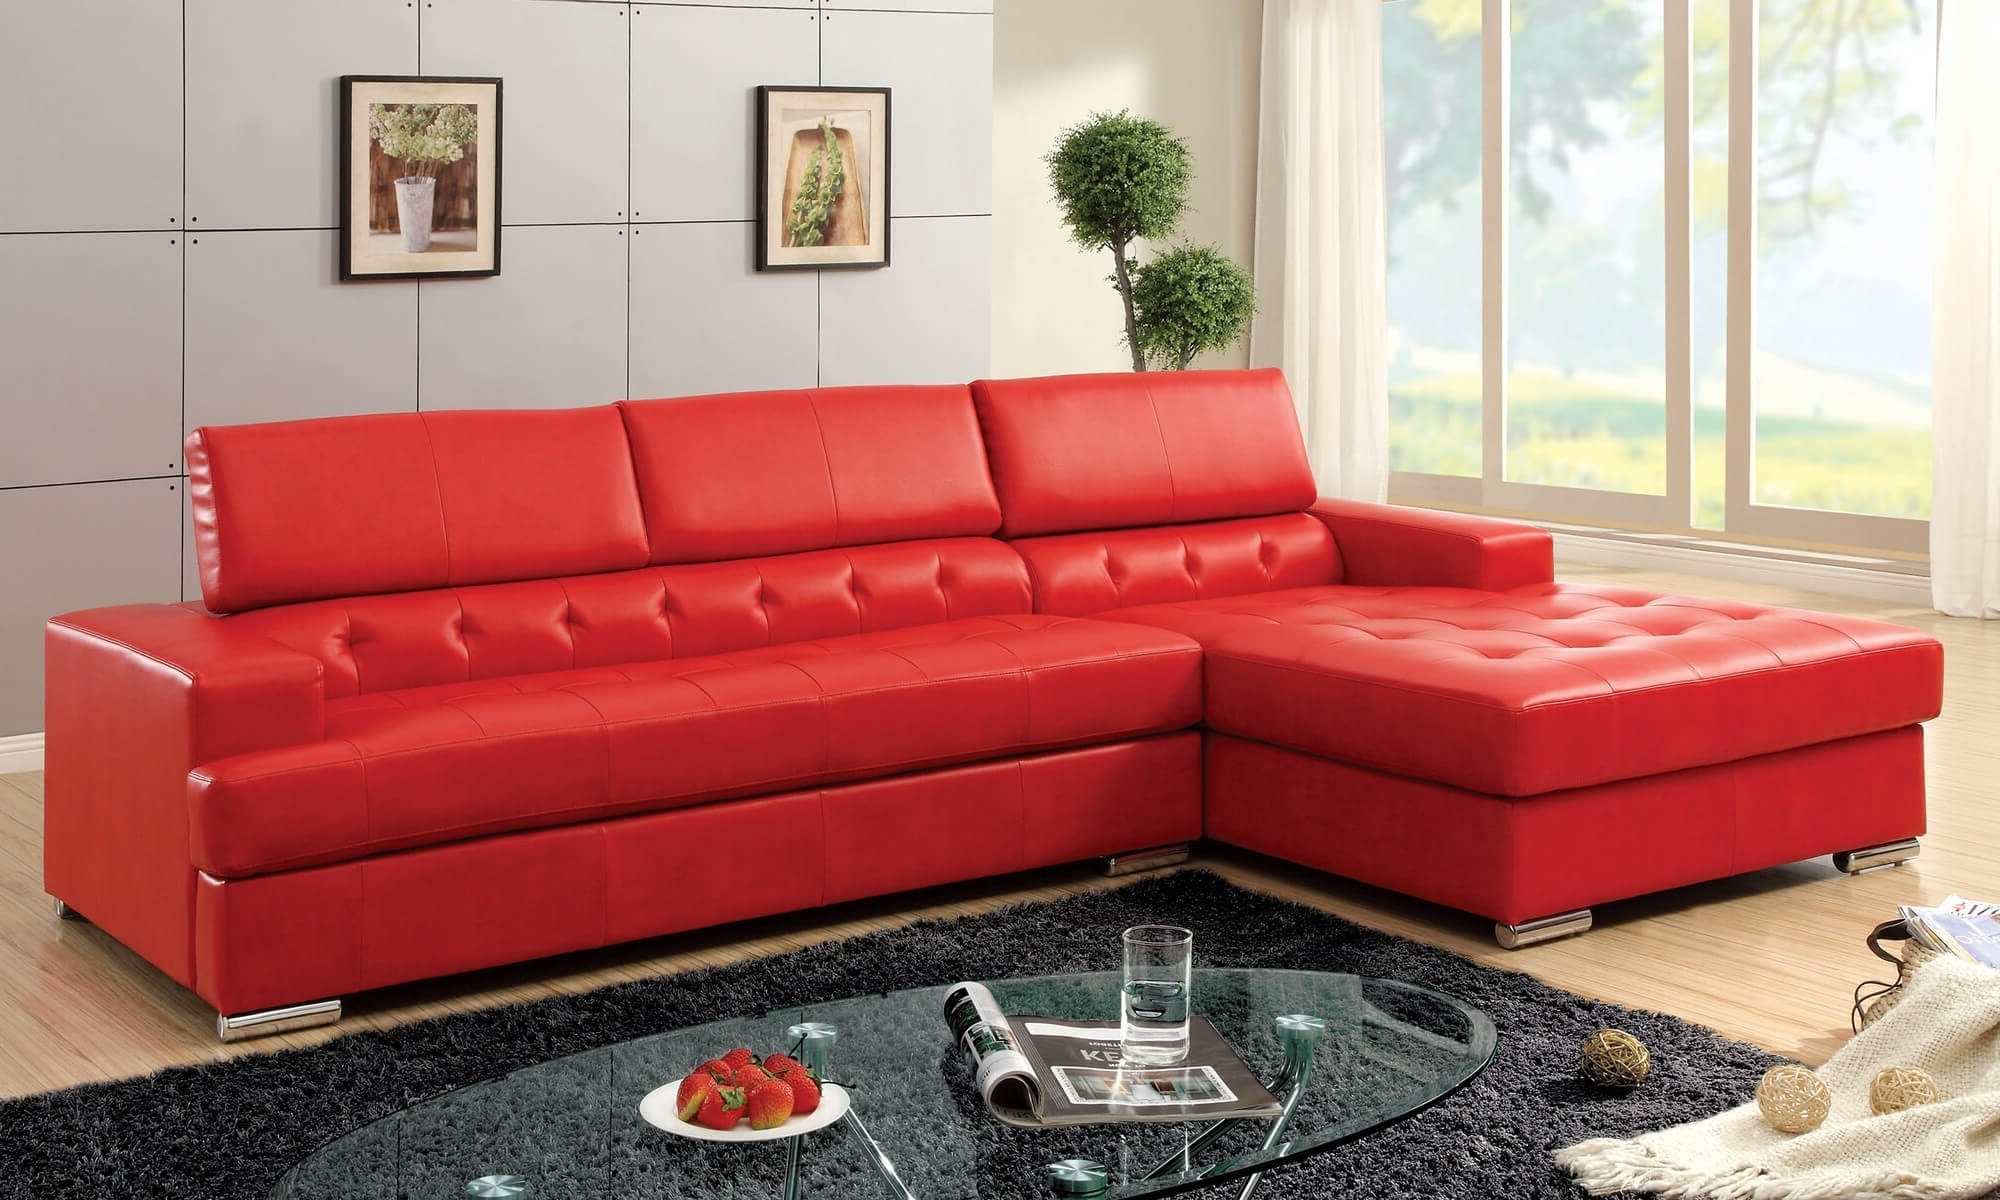 Preferred Sectional Sofa Design: Wonderful Red Sectional Sofa With Chaise Intended For Red Leather Sectionals With Chaise (View 8 of 15)